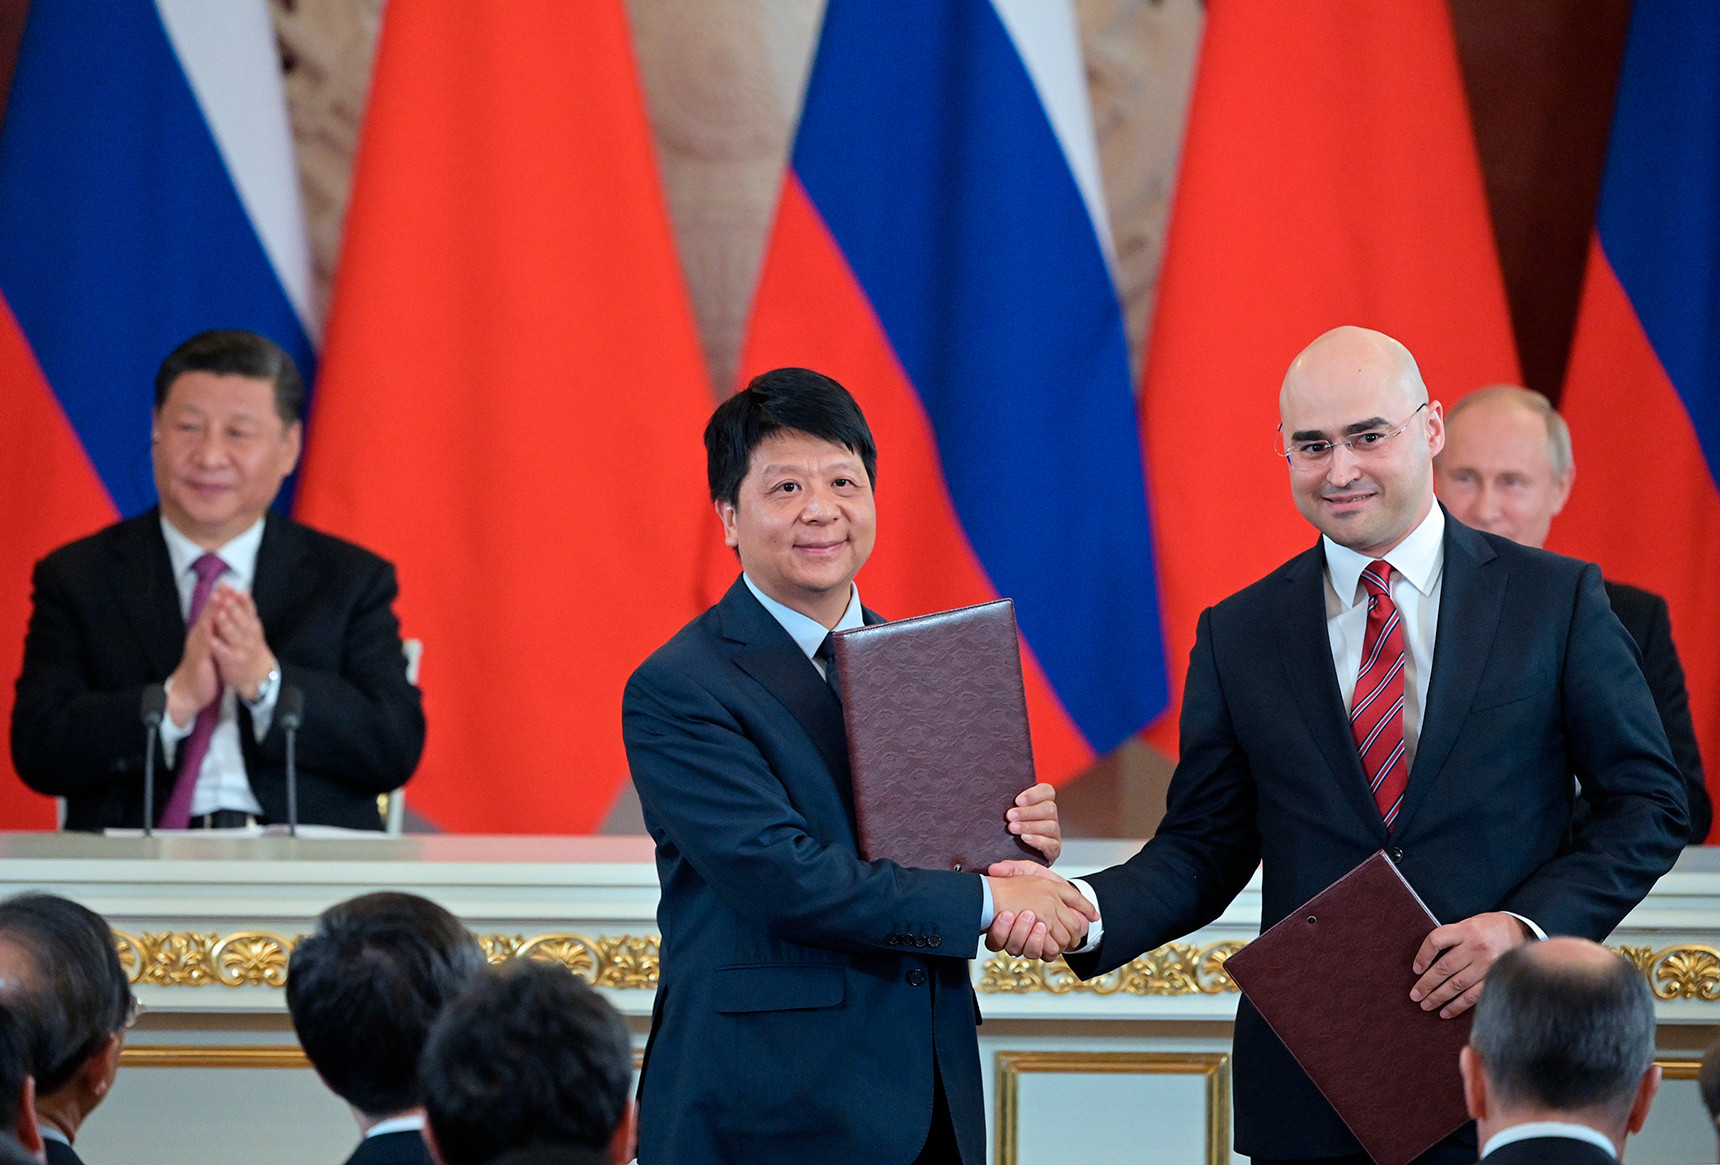 MTS PJSC President Alexey Kornya and Huawei CEO Guo Ping (right to left in the foreground) at the signing ceremony of joint documents on the results of Russian-Chinese negotiations